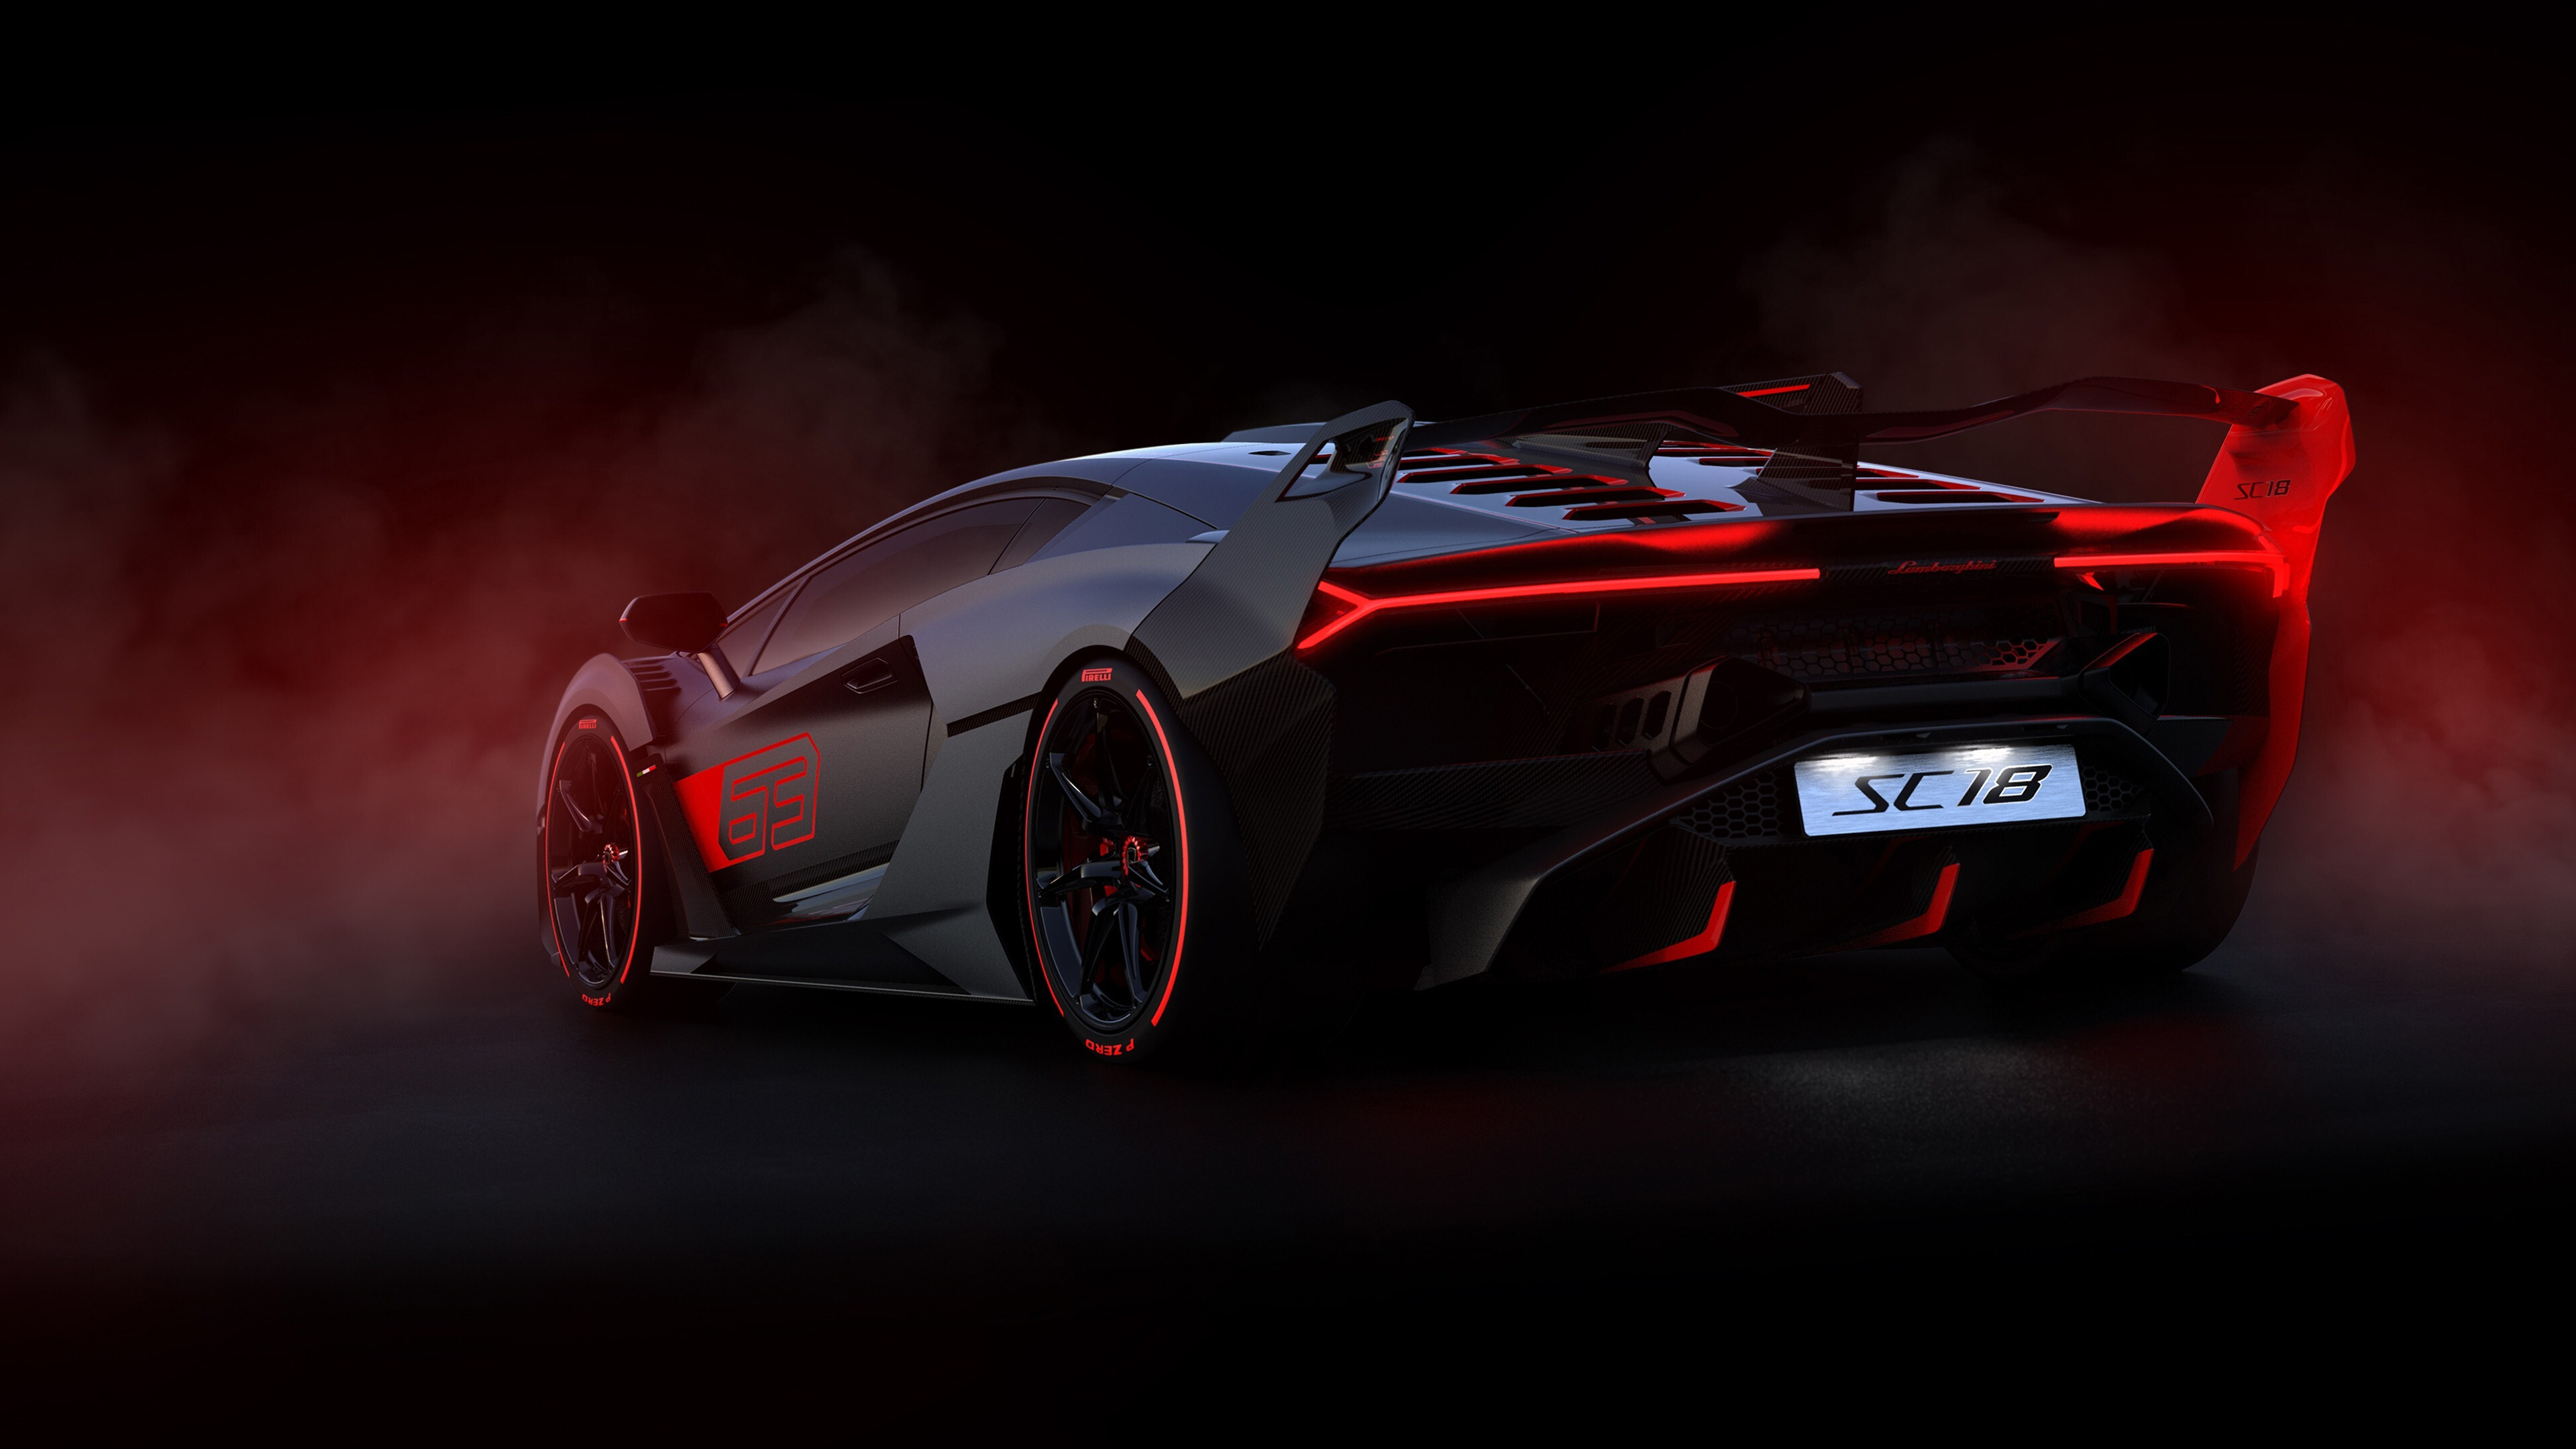 2019 Lamborghini Sc18 4k Car Wallpaper Hd Wallpapers